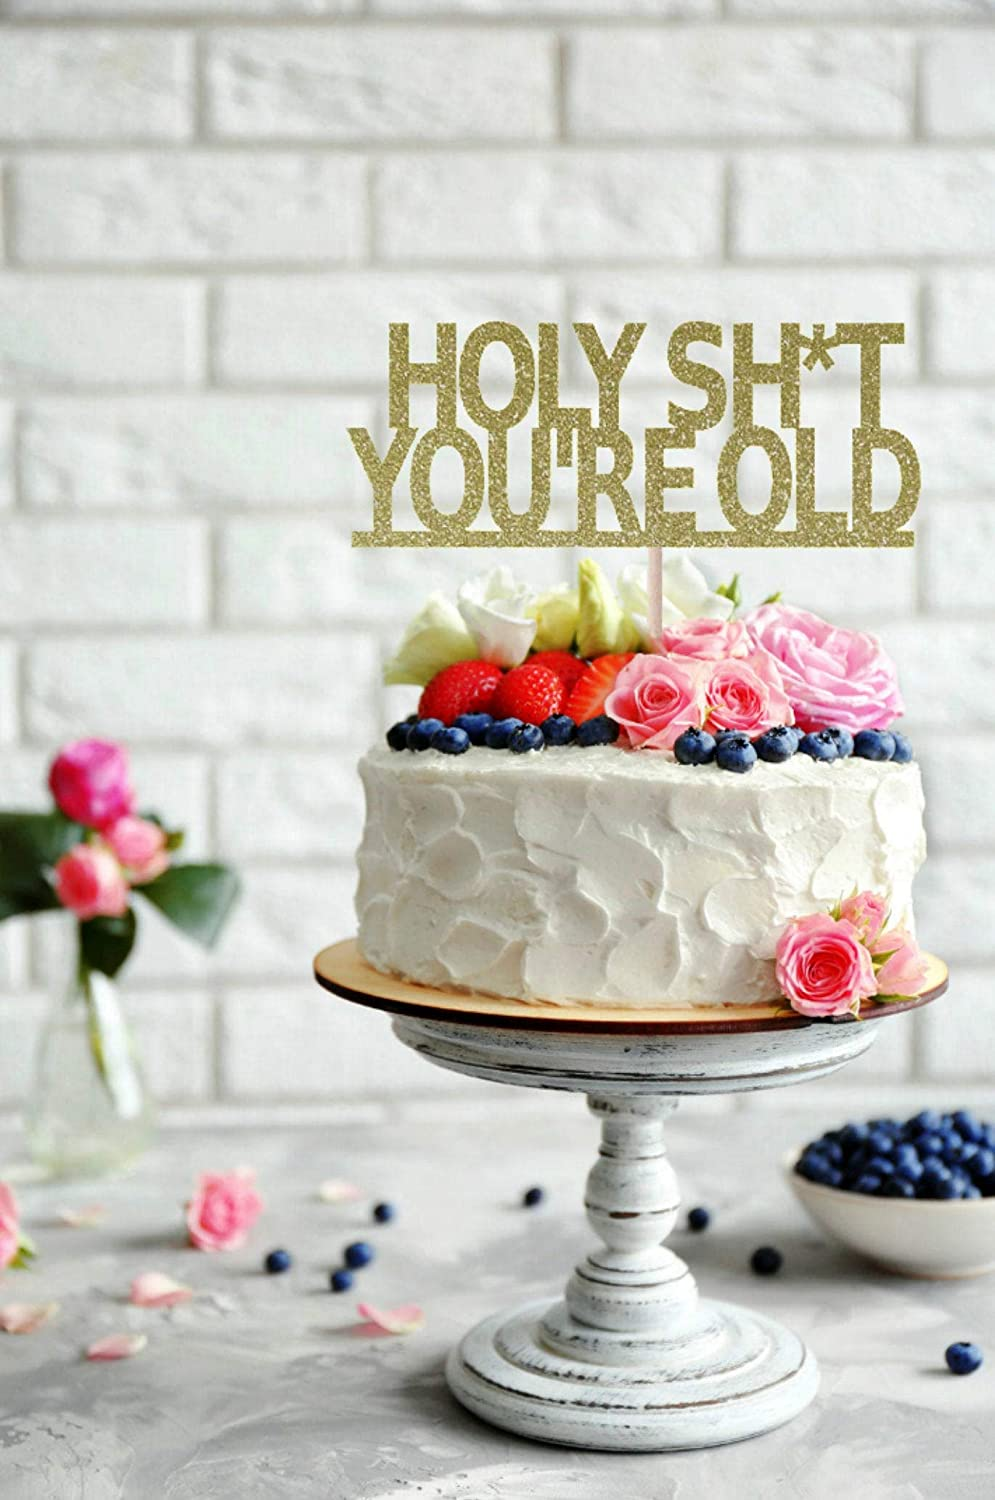 Terrific Holy Shit Youre Old Cake Topper Birthday Cake Topper Over The Funny Birthday Cards Online Sheoxdamsfinfo